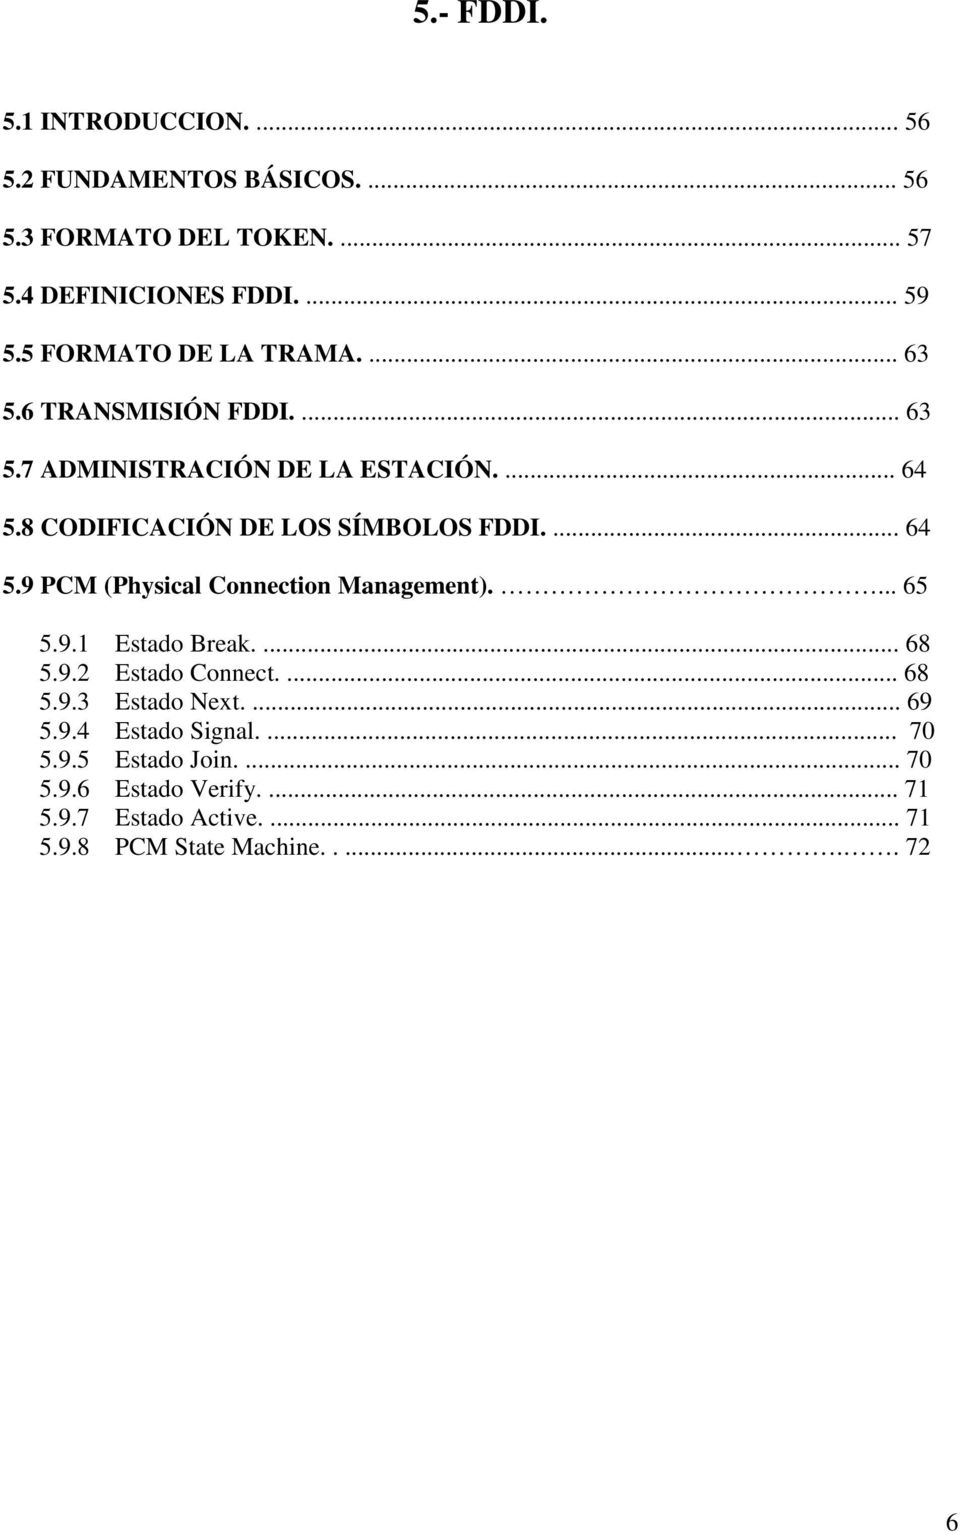 8 CODIFICACIÓN DE LOS SÍMBOLOS FDDI.... 64 5.9 PCM (Physical Connection Management).... 65 5.9.1 Estado Break.... 68 5.9.2 Estado Connect.